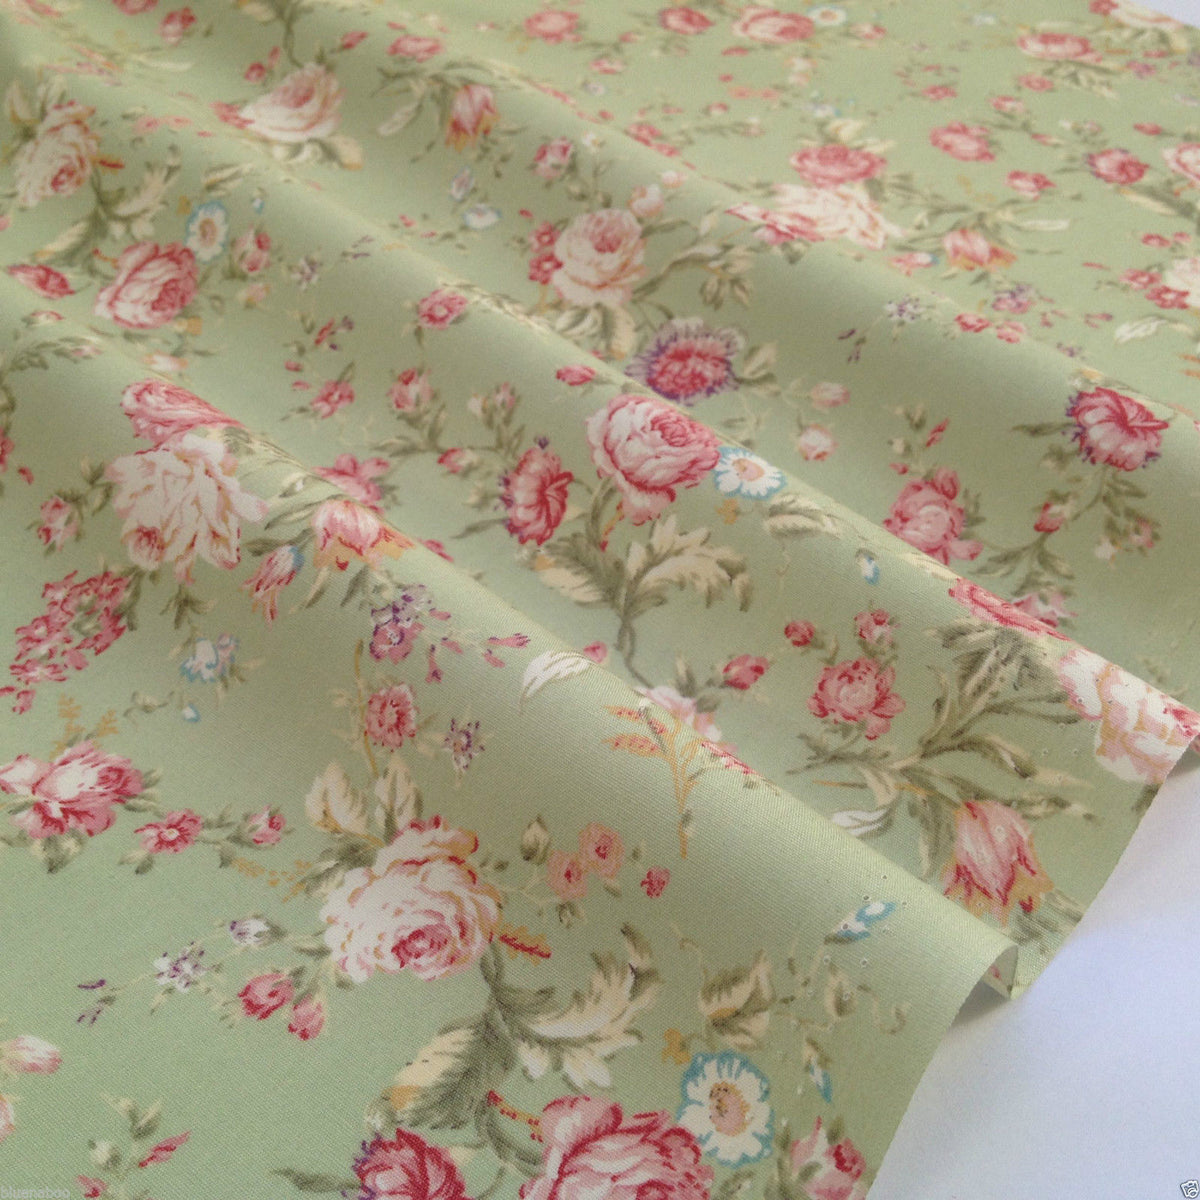 Green vintage floral, 100% Cotton Fabric per sold per half metre, 112cm wide